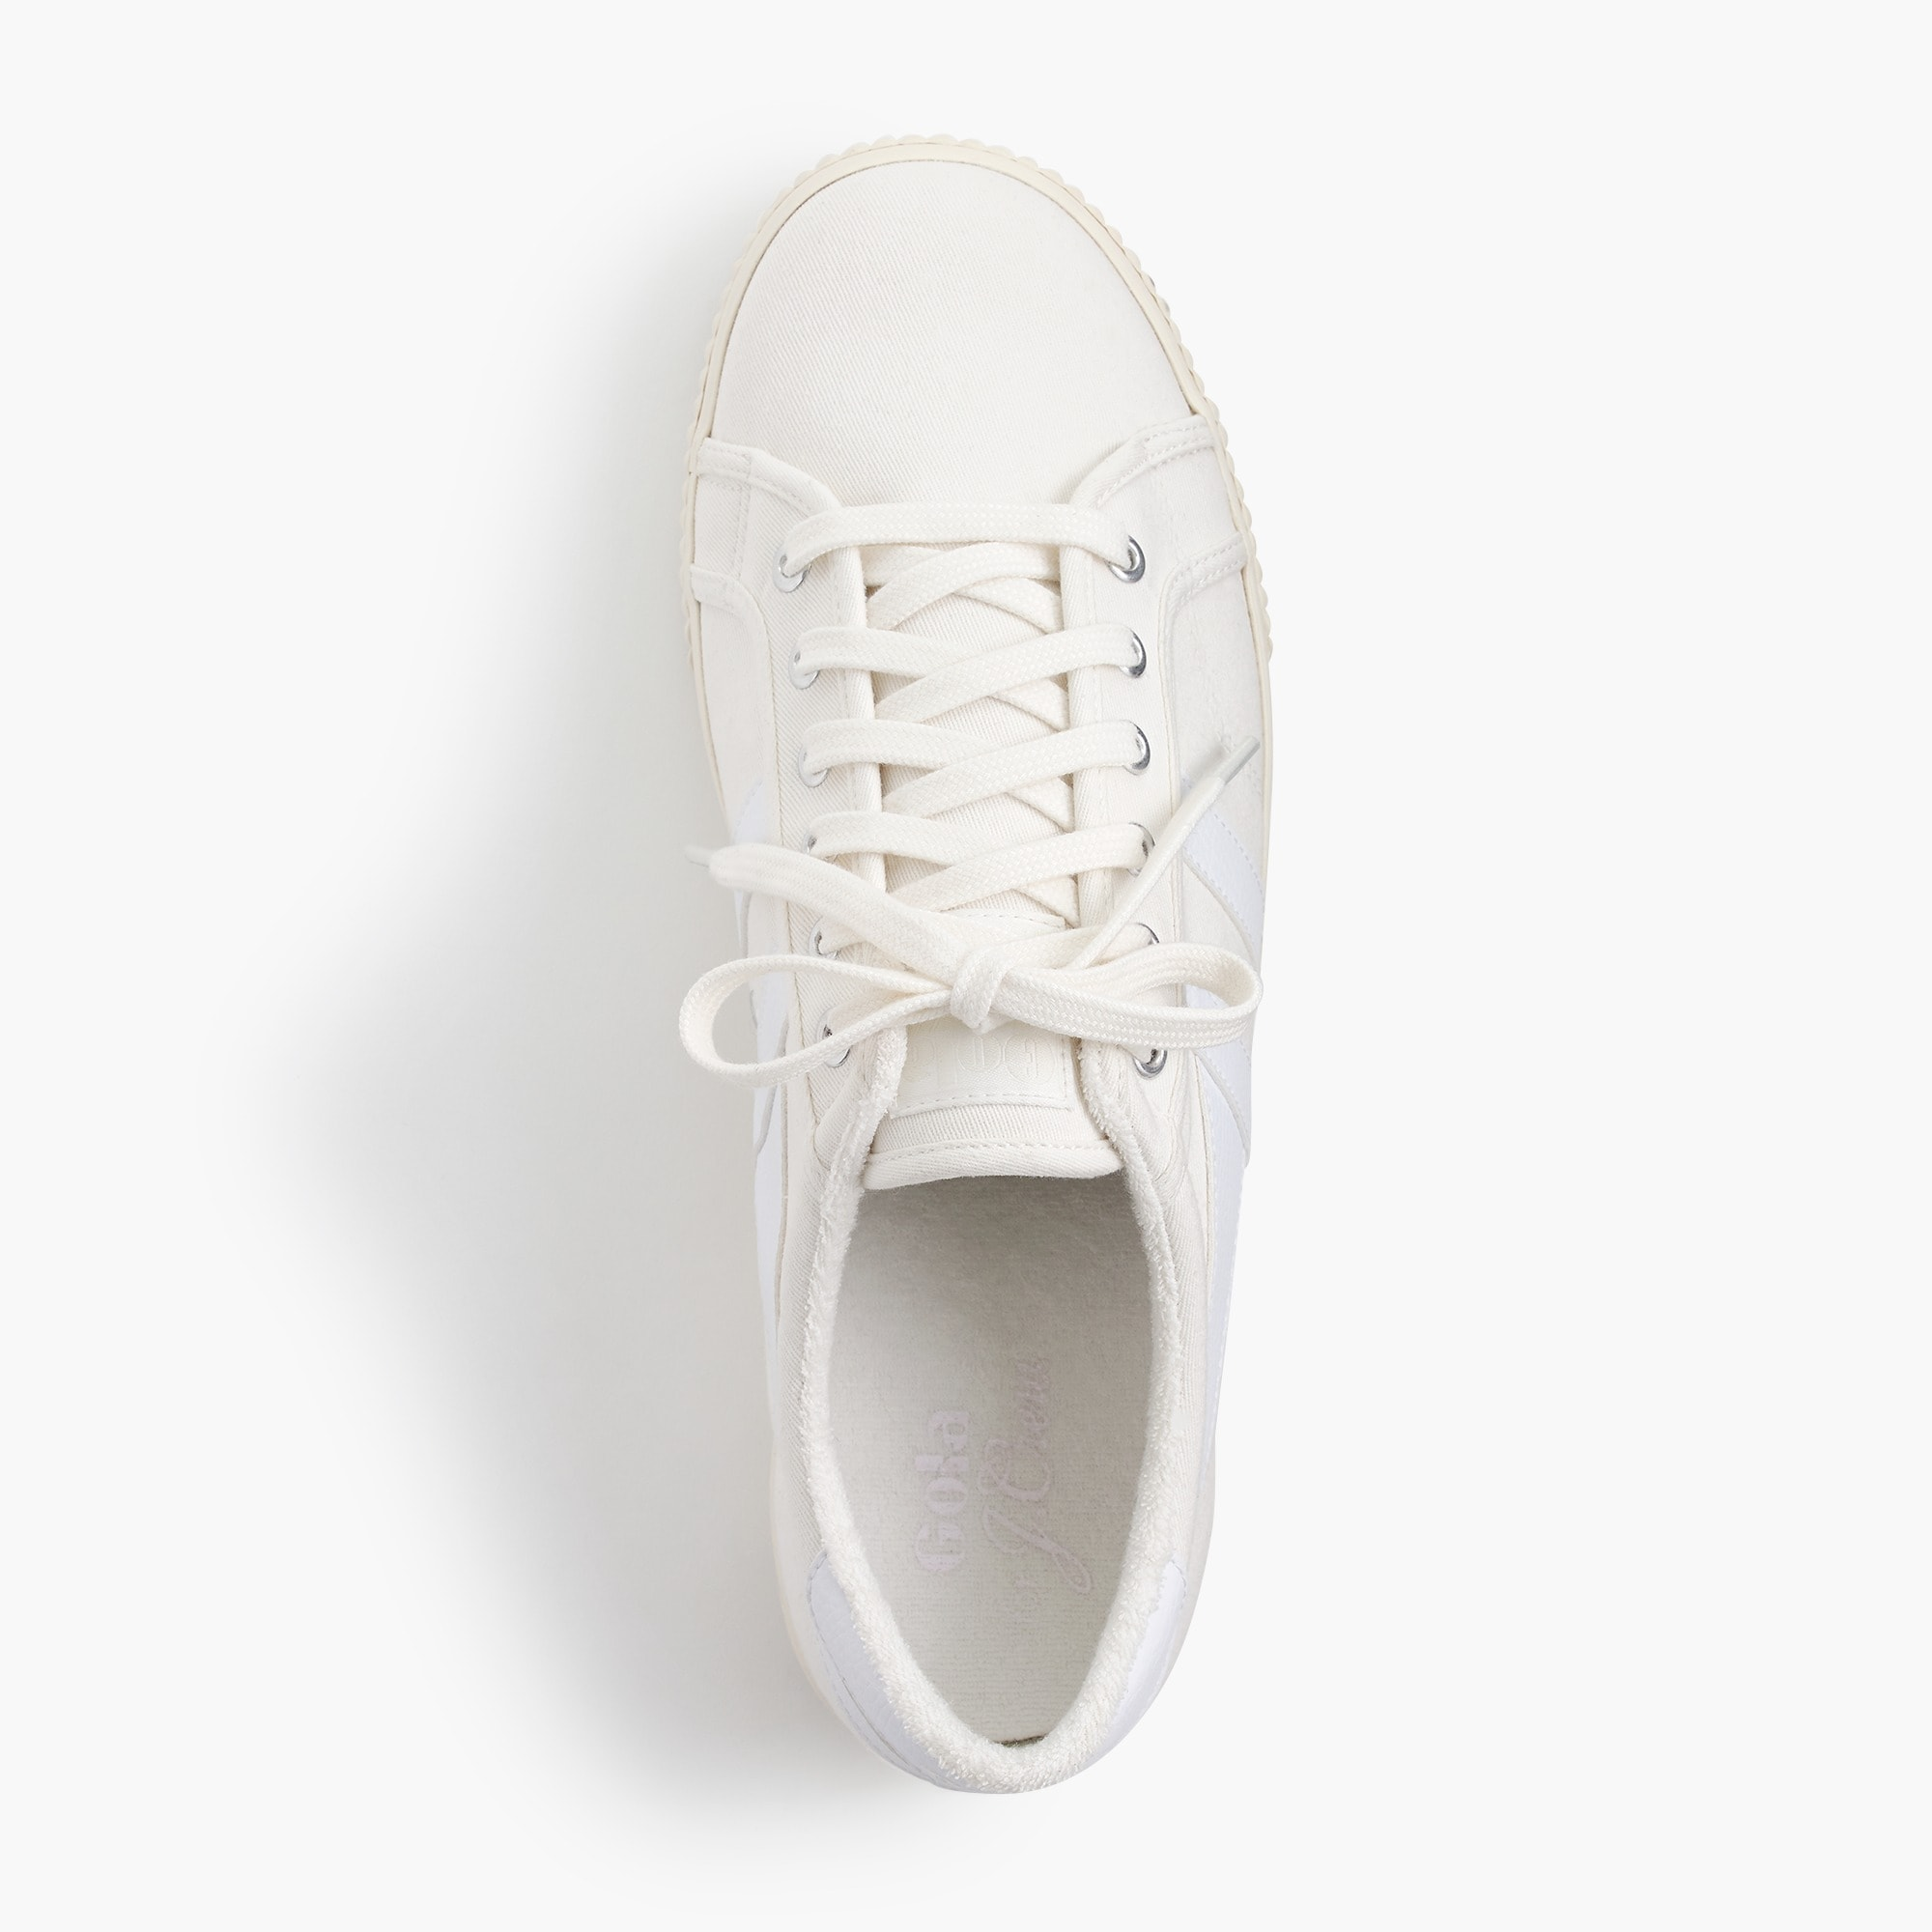 Image 2 for Gola® for J.Crew sneakers in white